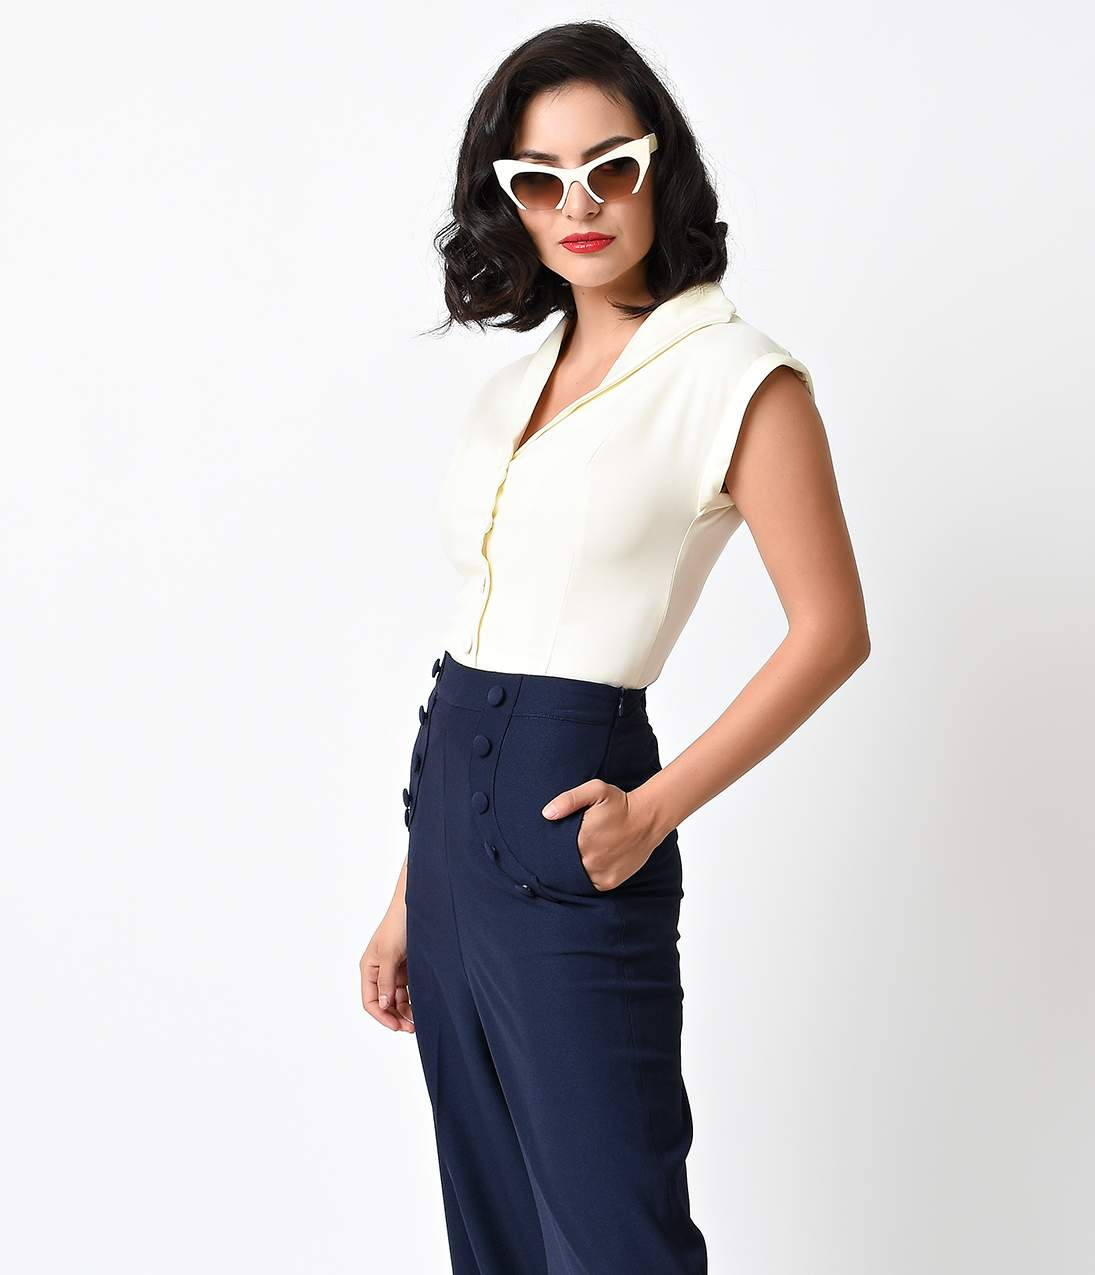 Agent Peggy Carter Costume, Dress, Hats Banned Vintage Off White Button Up Cap Sleeve Blouse $48.00 AT vintagedancer.com